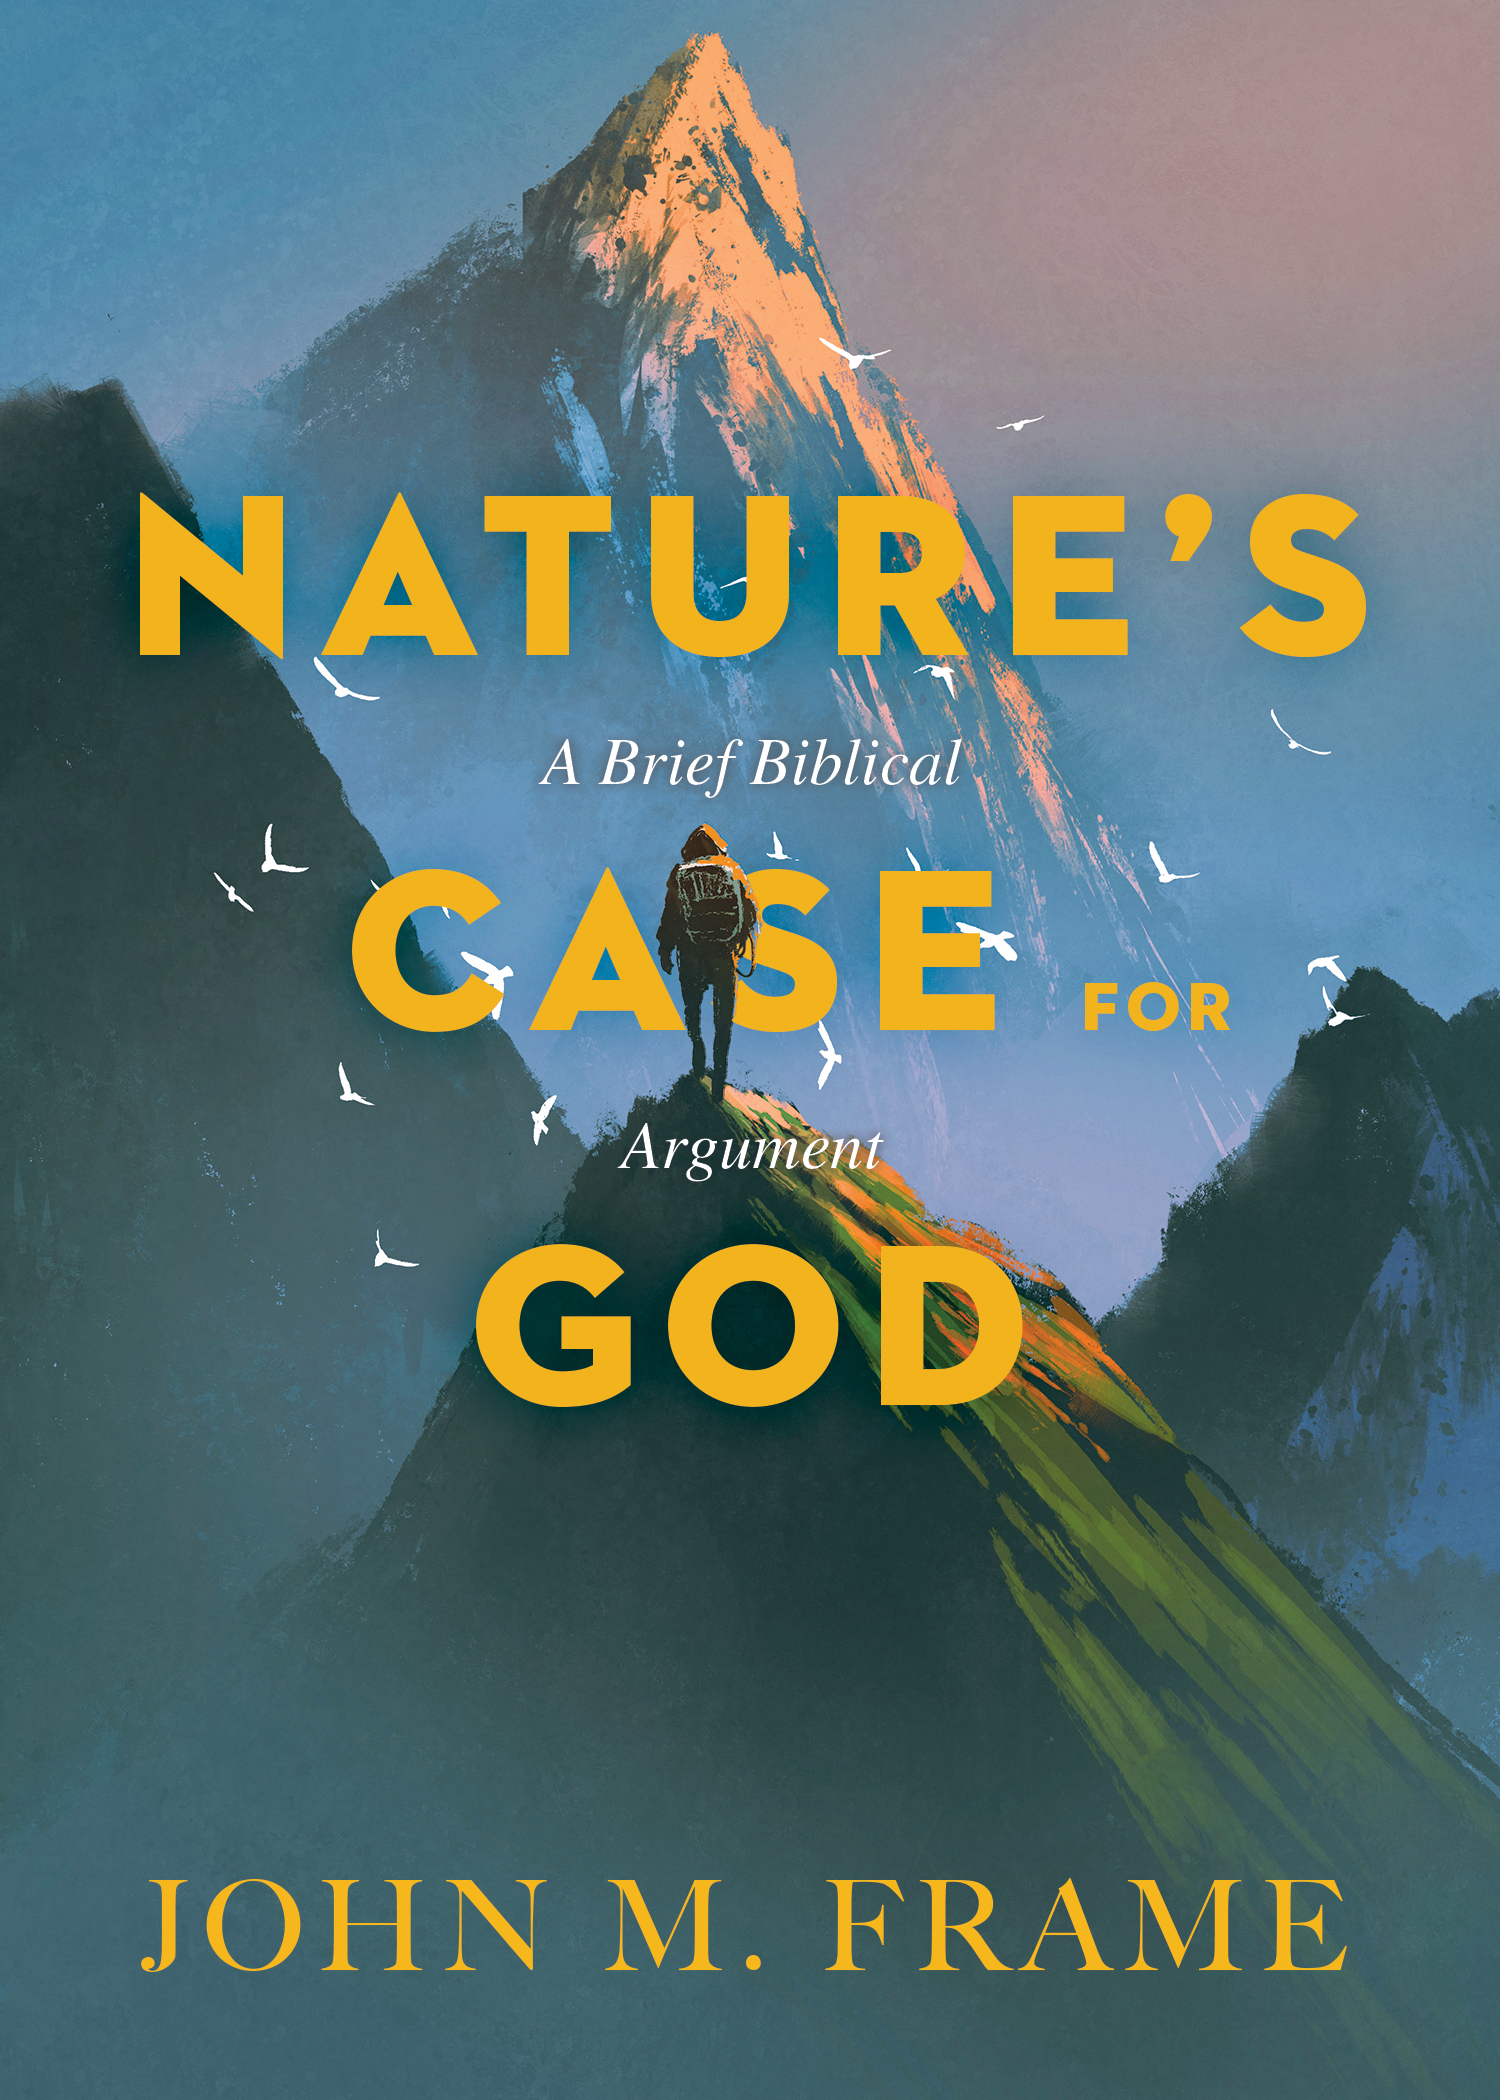 Nature's Case for God: A Brief Biblical Argument